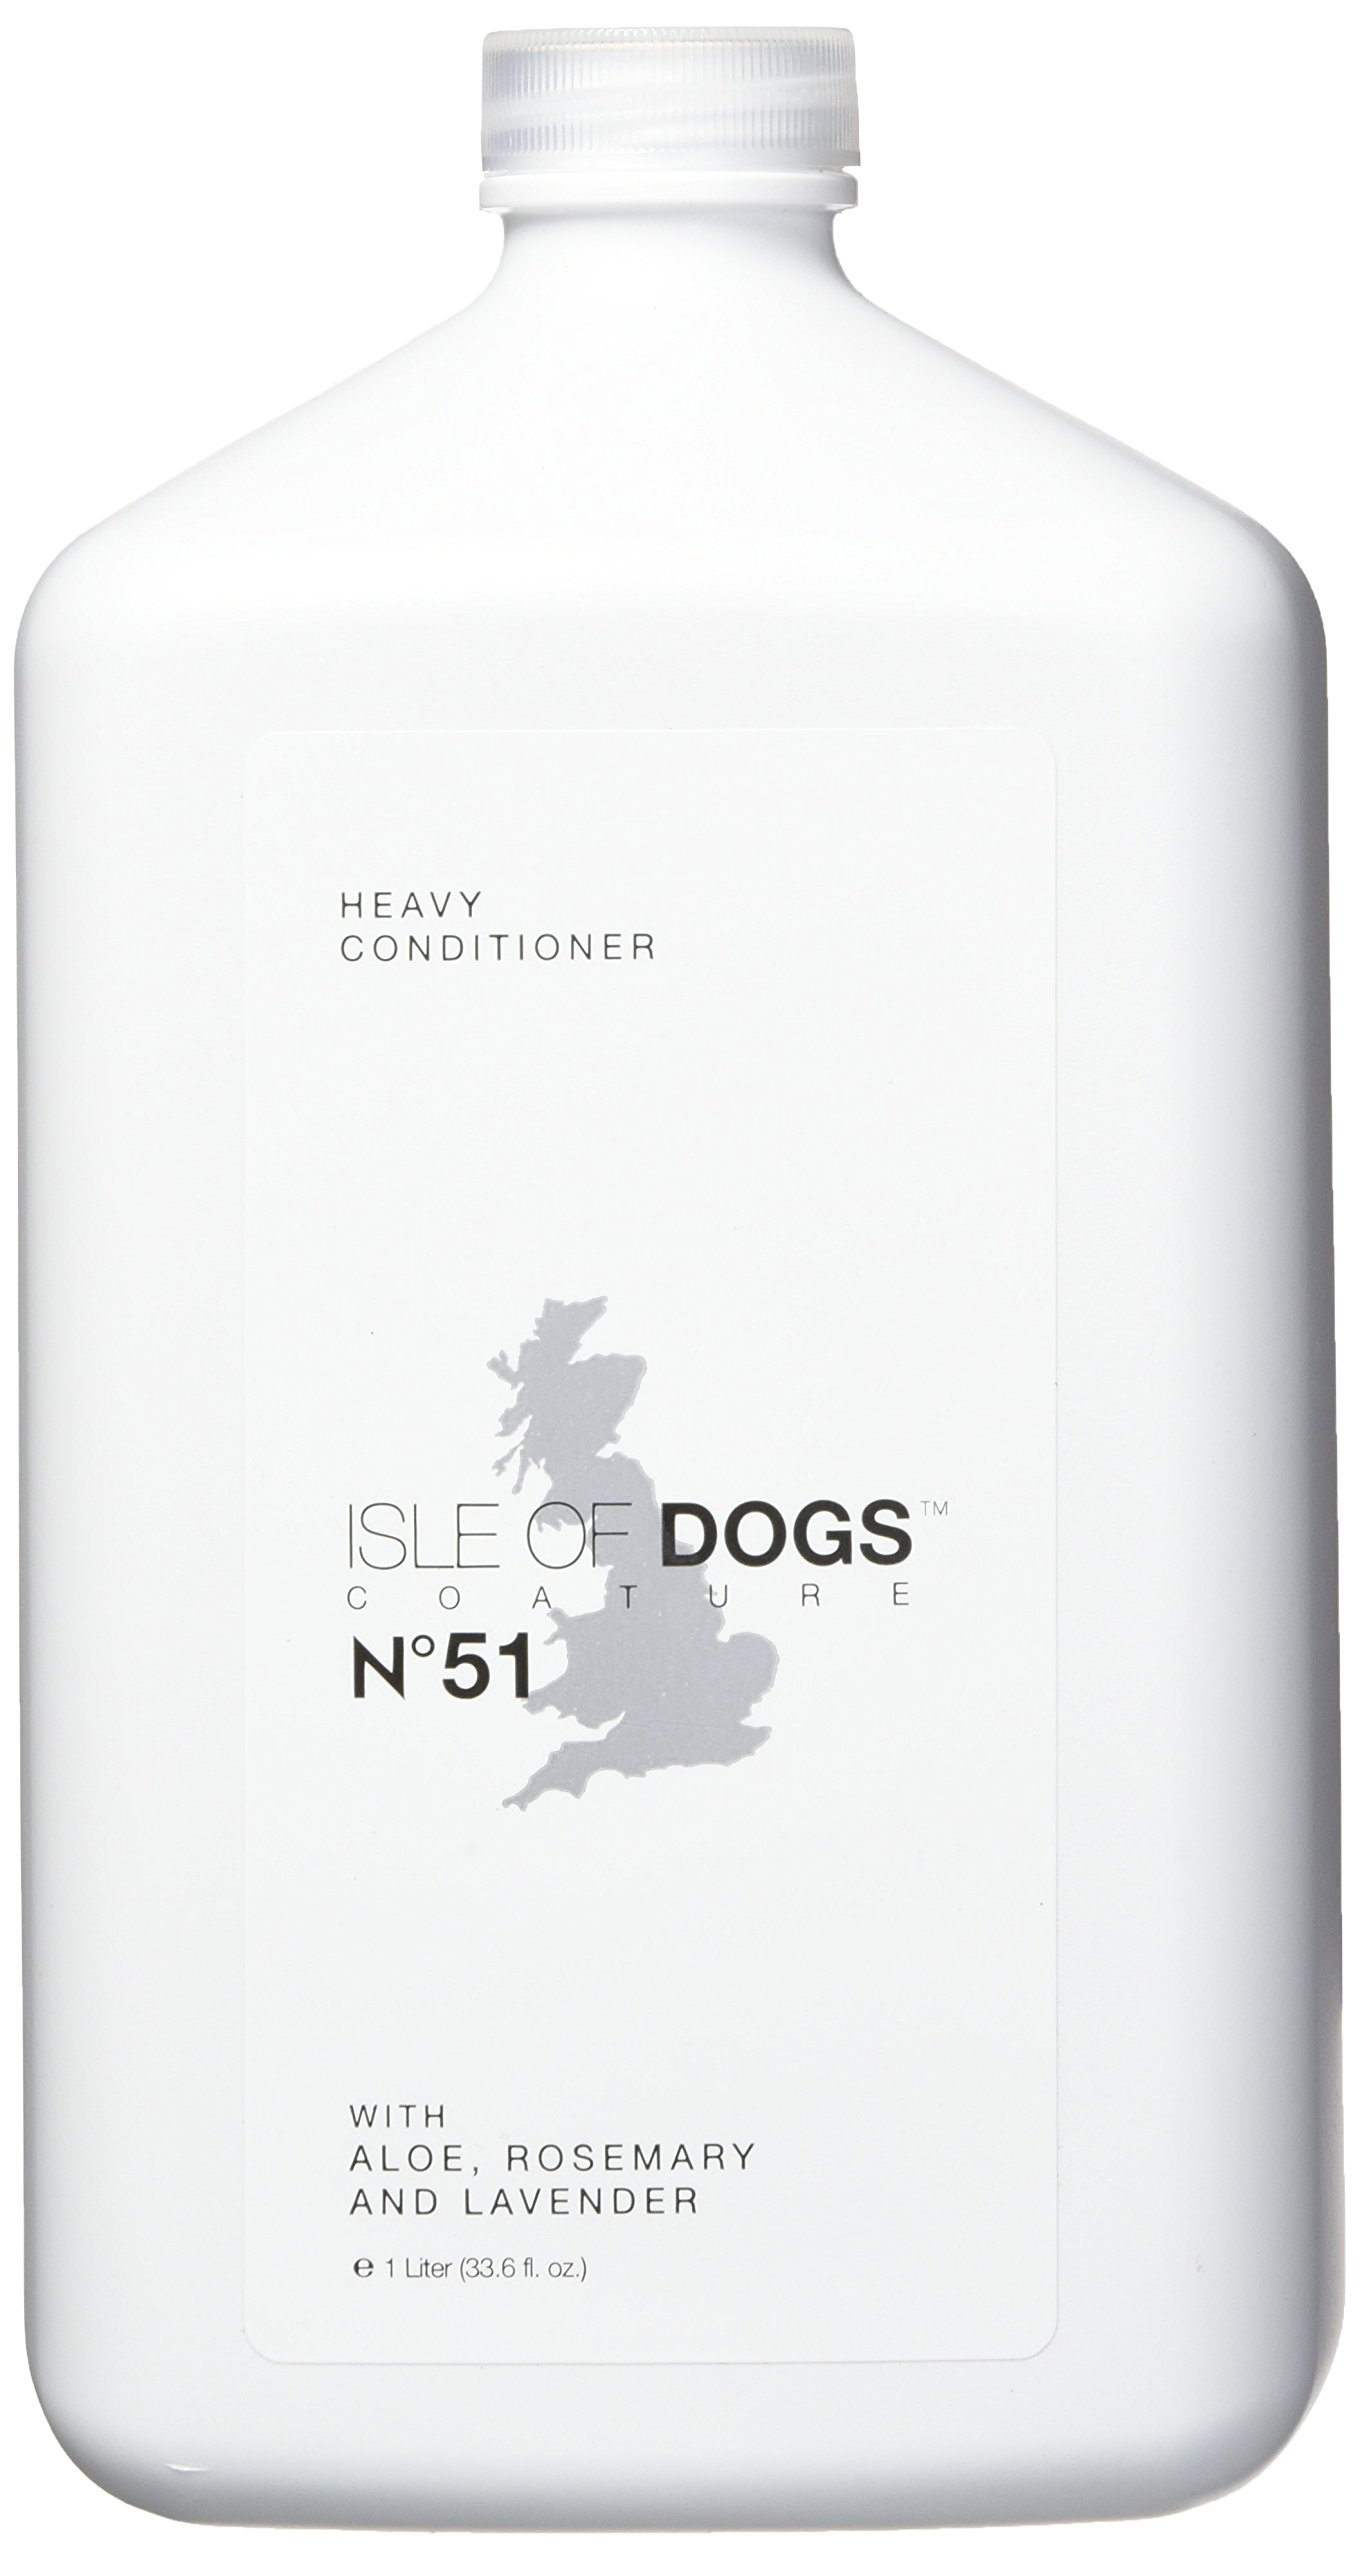 Isle of Dogs Coature No. 51 Heavy Management Dog Conditioner for damaged hair, 1 liter by Isle of Dogs